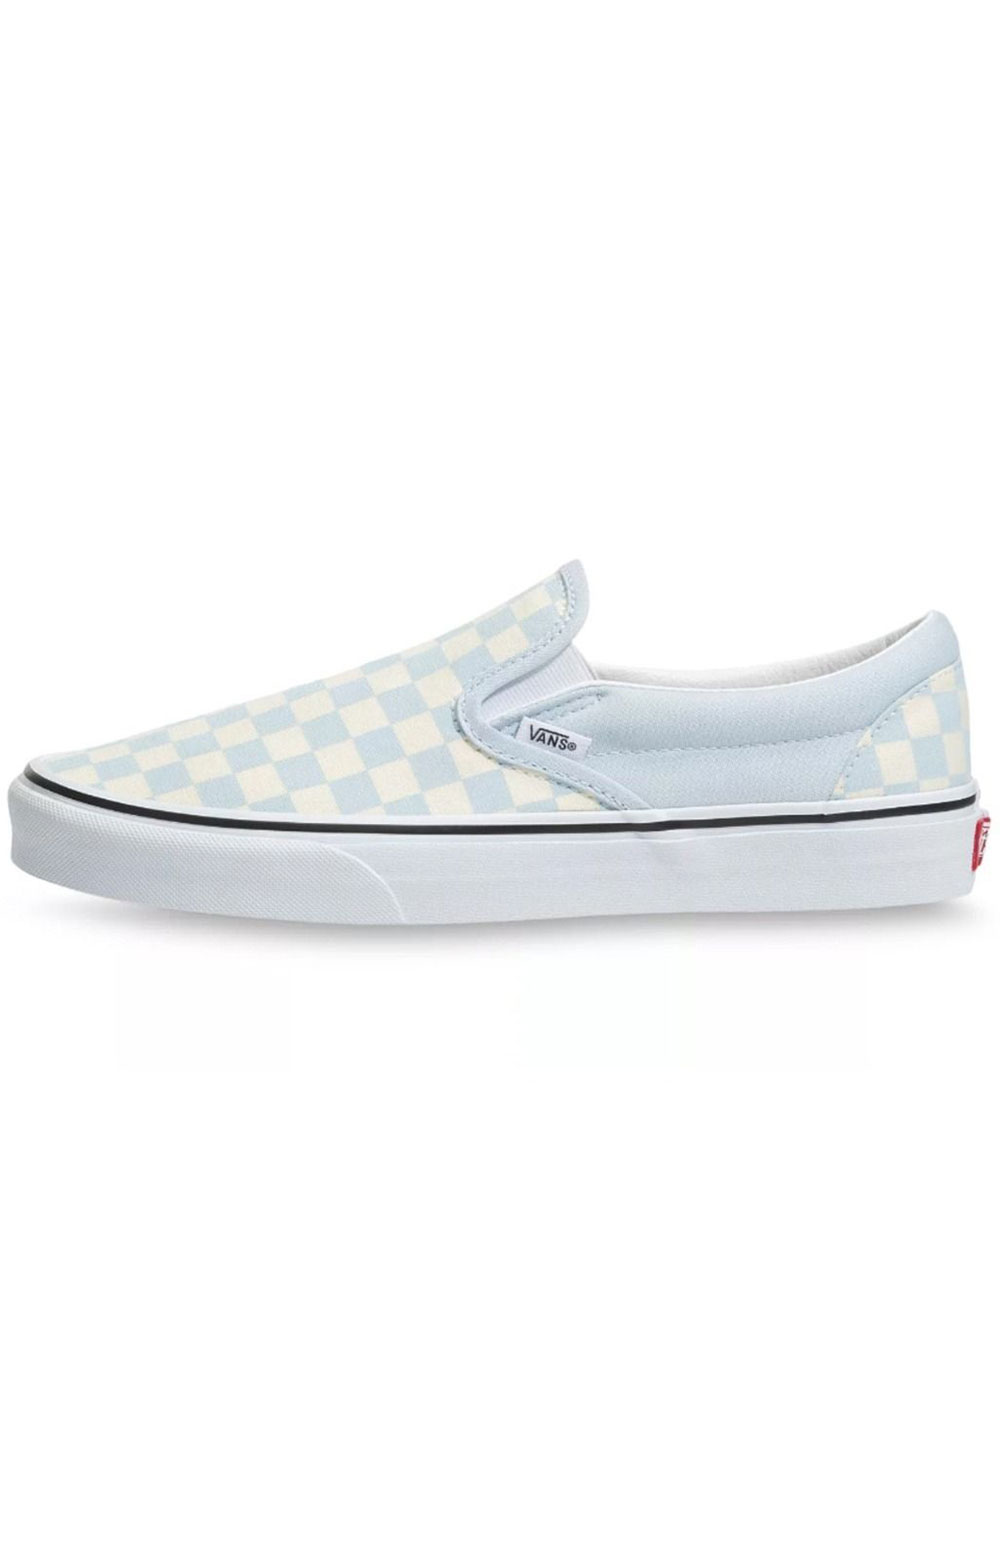 (3TB42Y) Checkerboard Classic Slip-On Shoes - Baby Blue  4